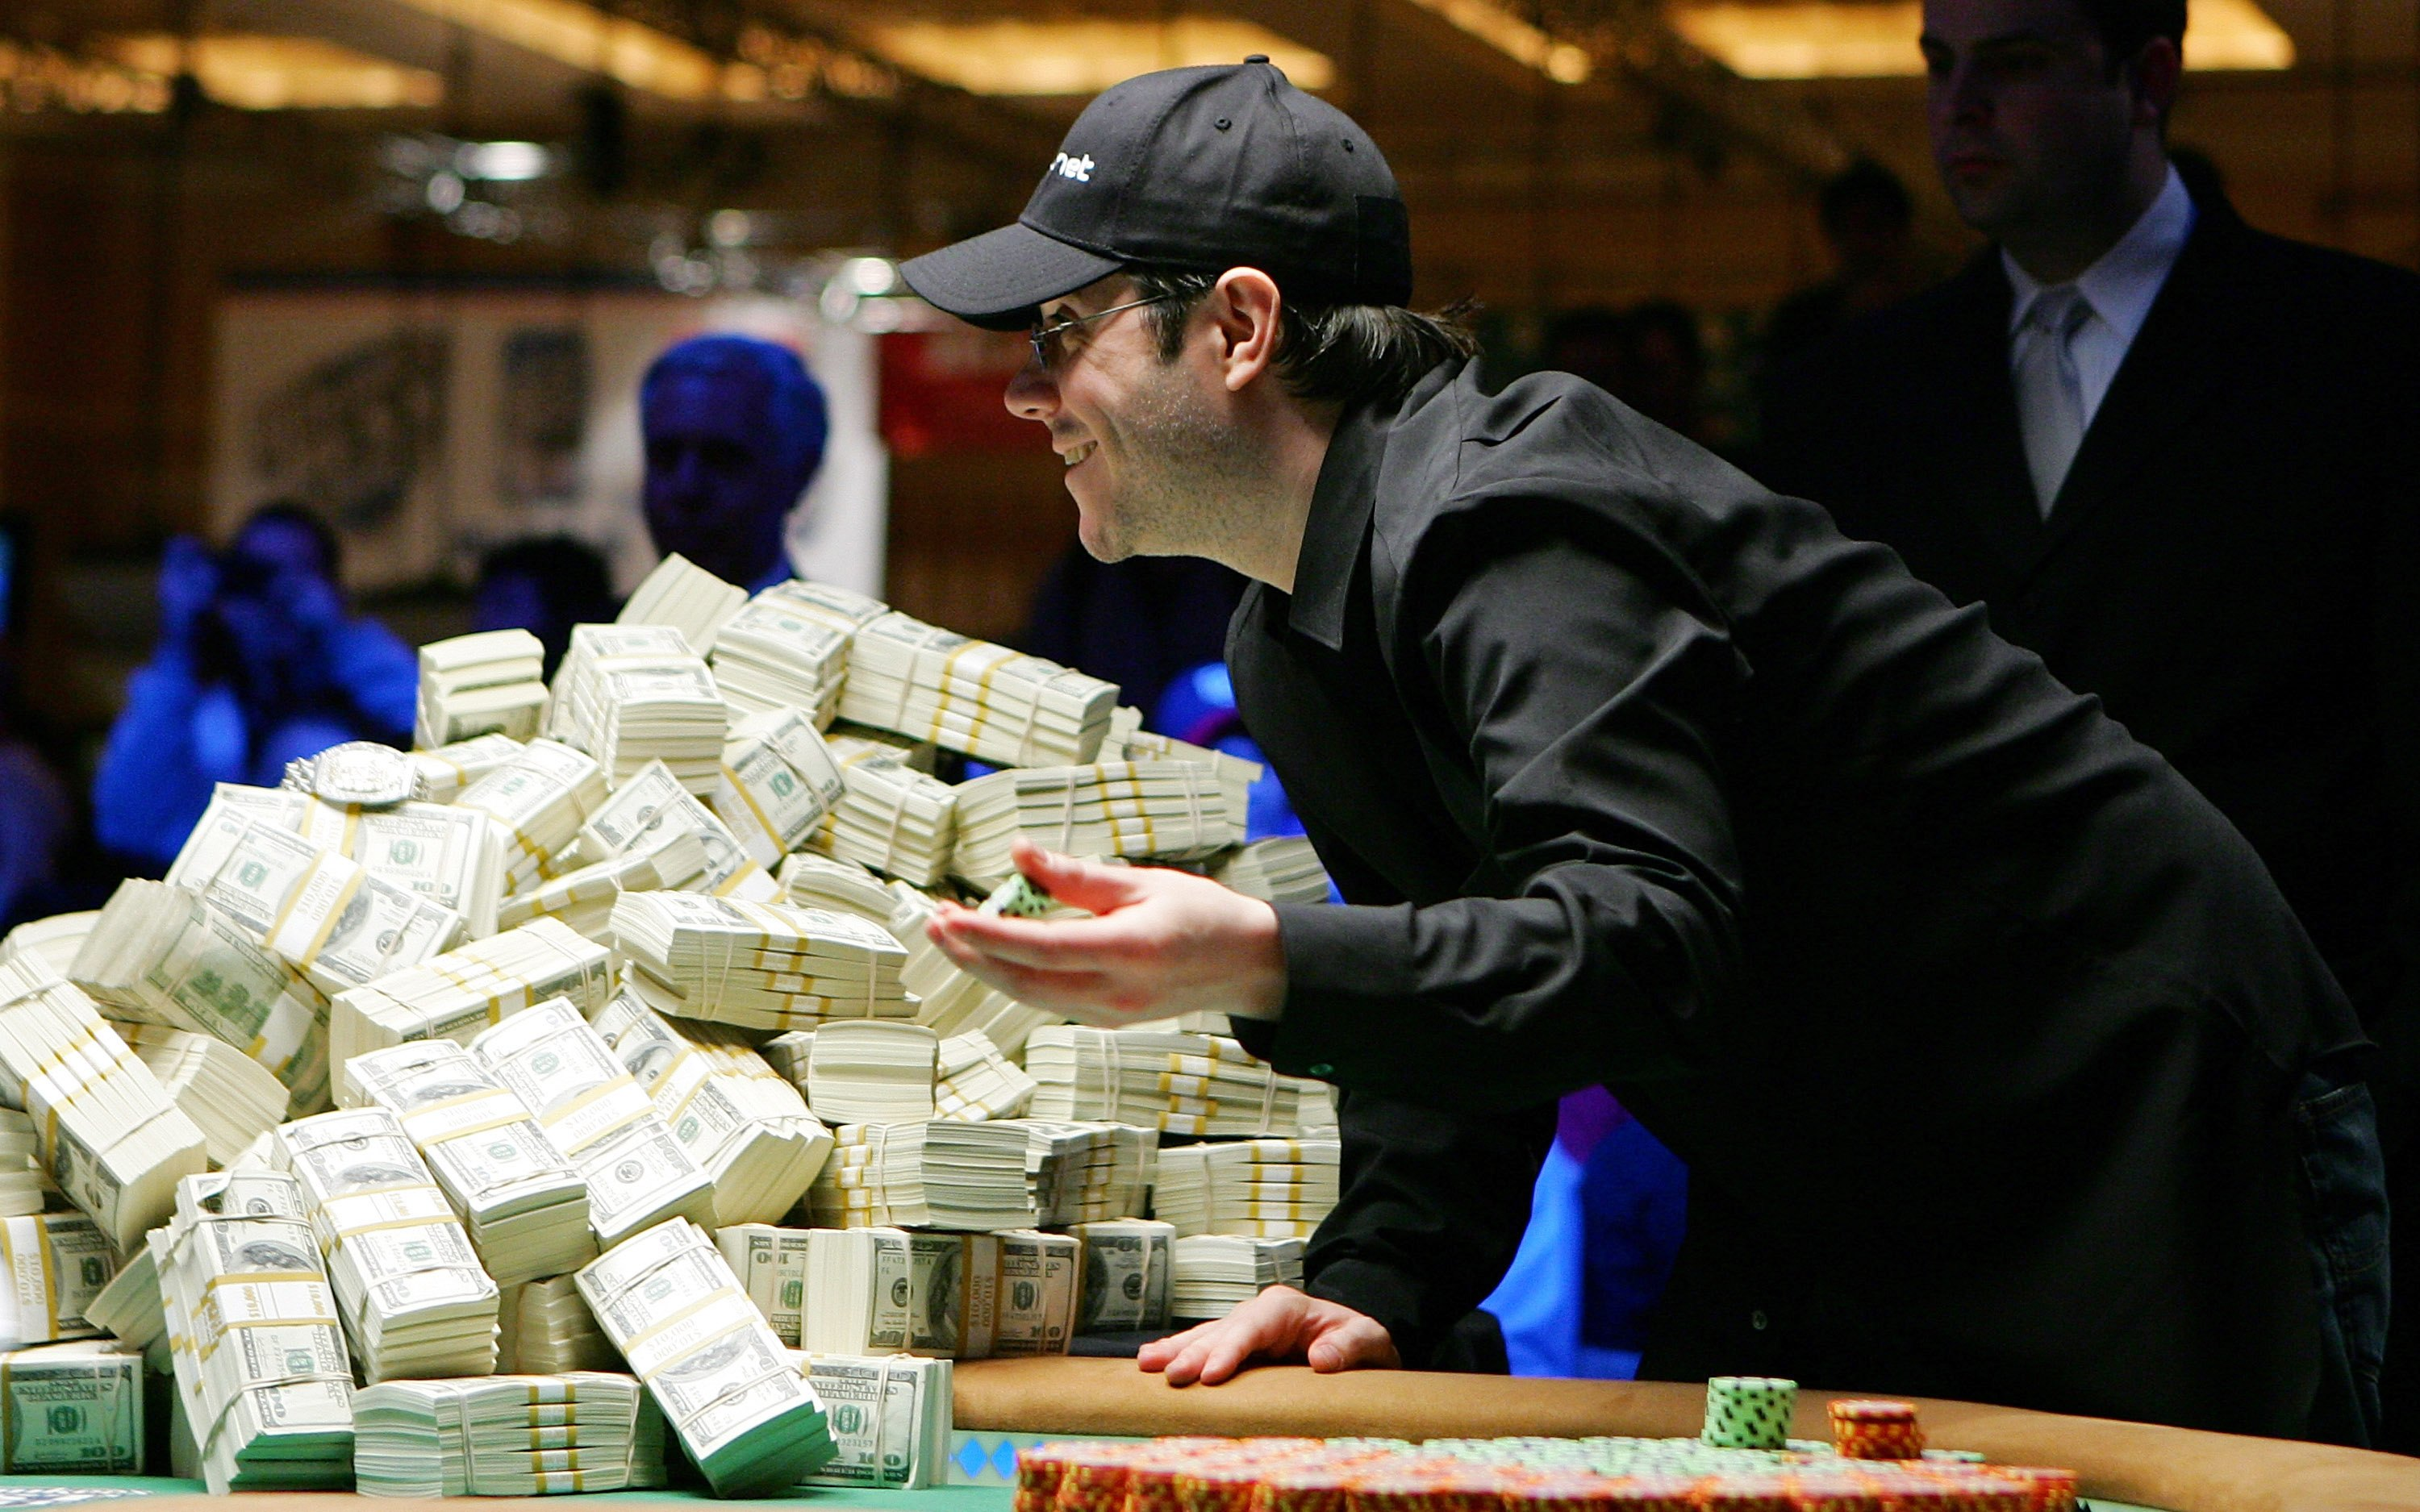 Jamie Gold in his element during the 2006 World Series of Poker Main Event, goading Paul Wasicka into a call during the heads-up battle for $12 million. (Photo: GettyImages)